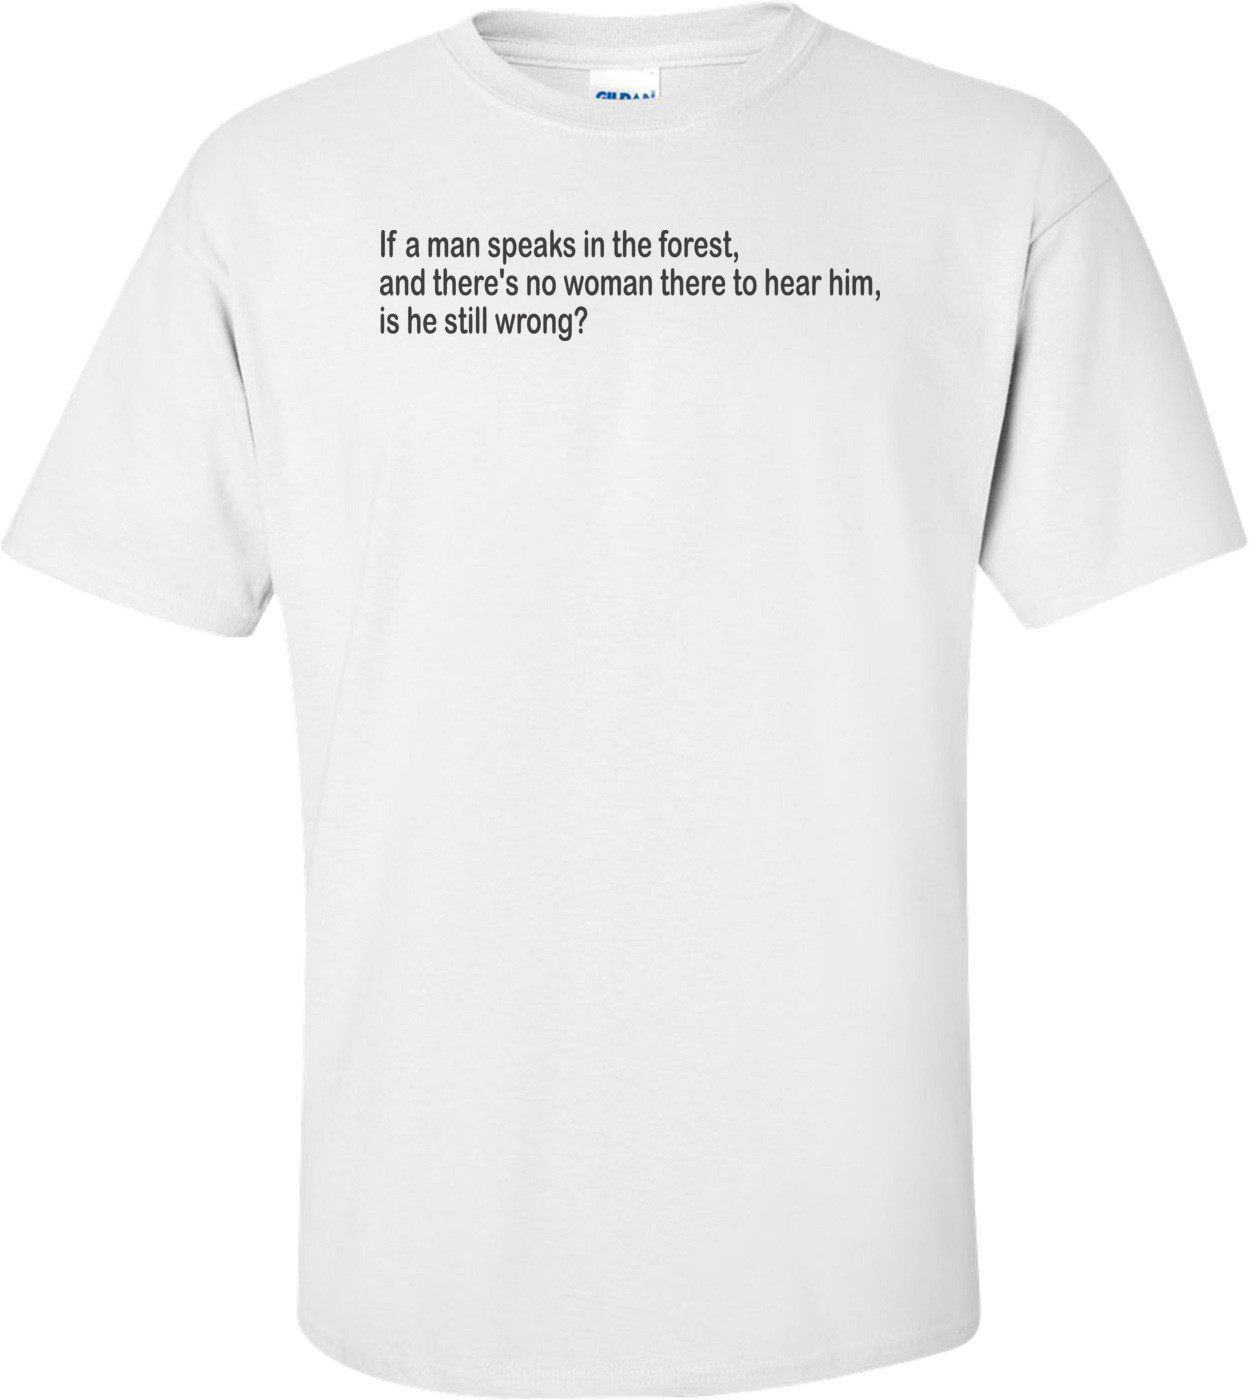 If A Man Speaks In The Forest And There's No Woman To Hear Him, Is He Still Wrong T-shirt